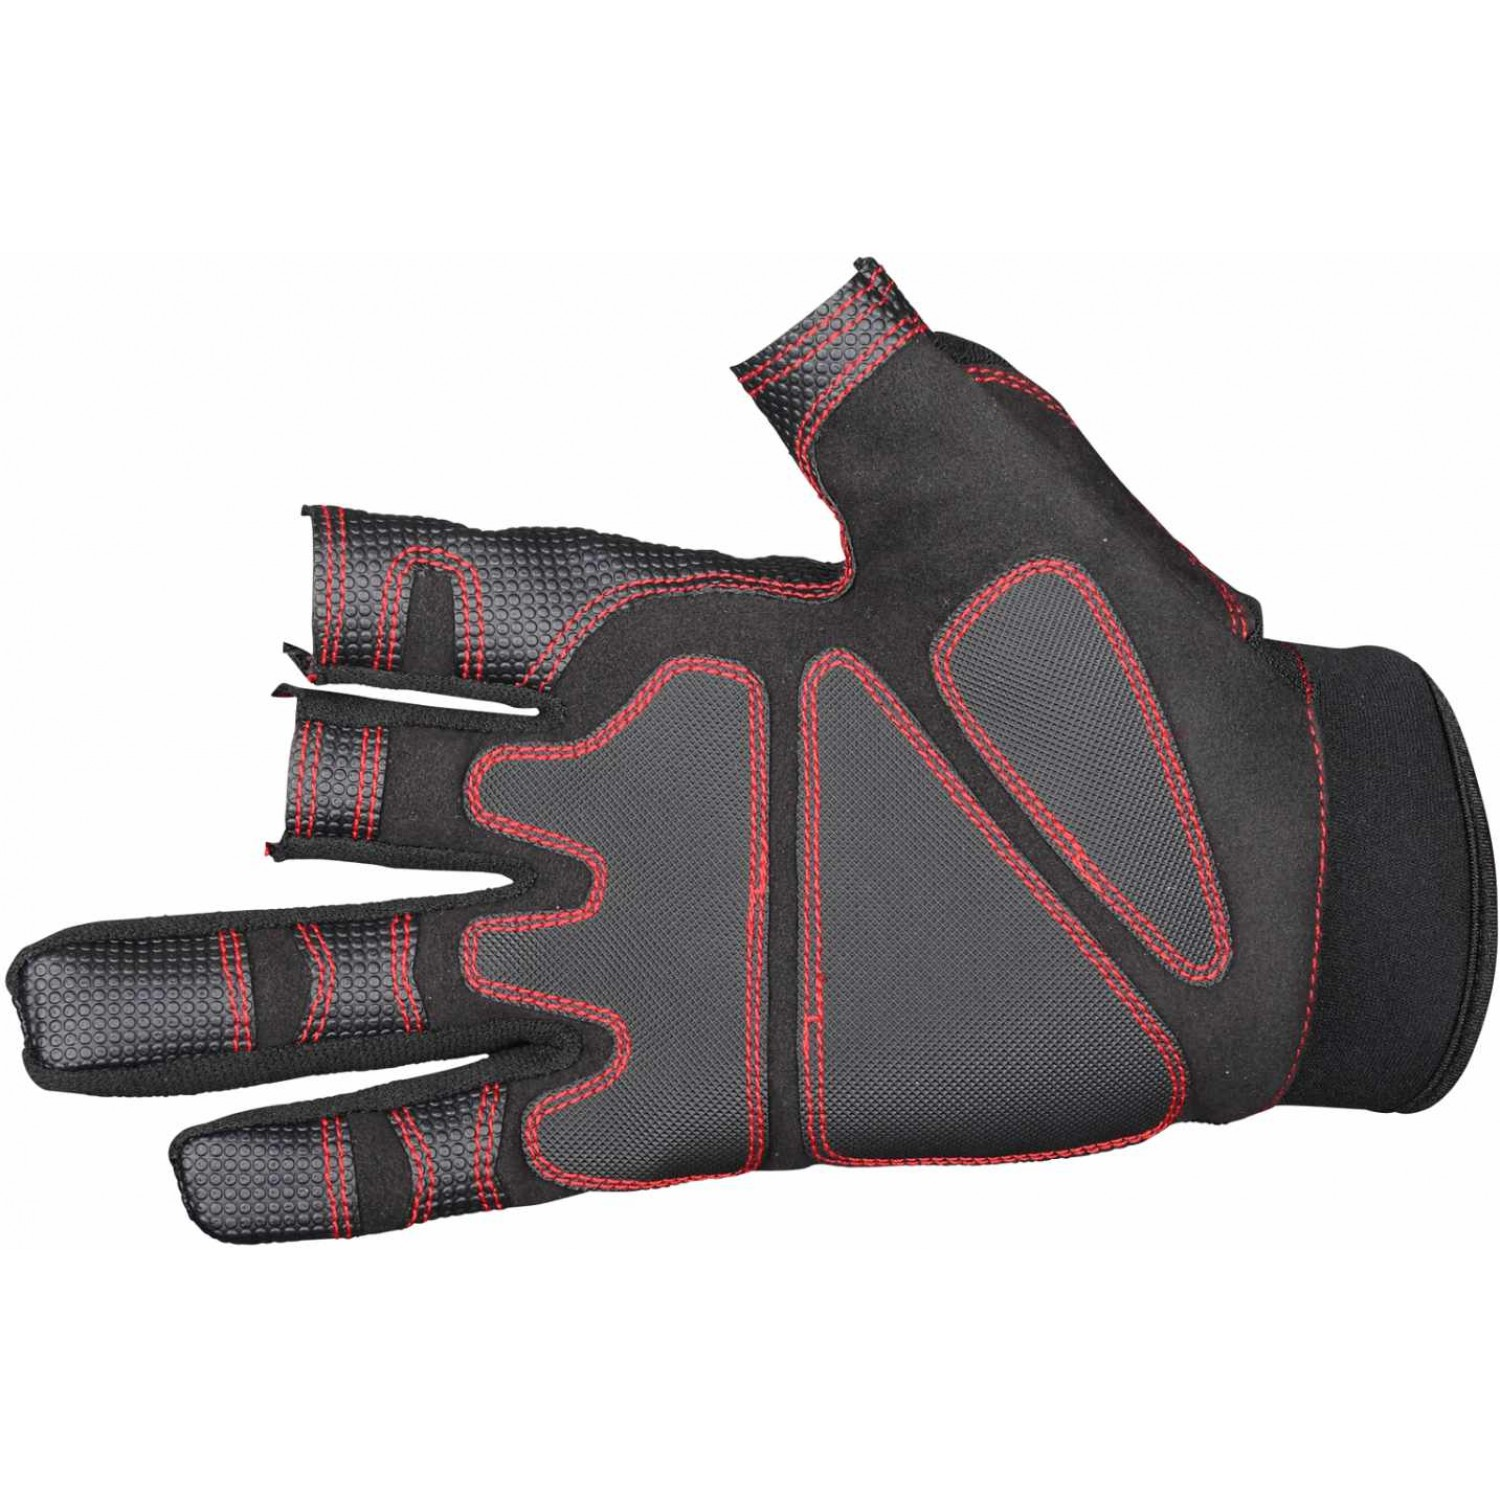 Gamakatsu Armor Gloves 3 Fing-Cut